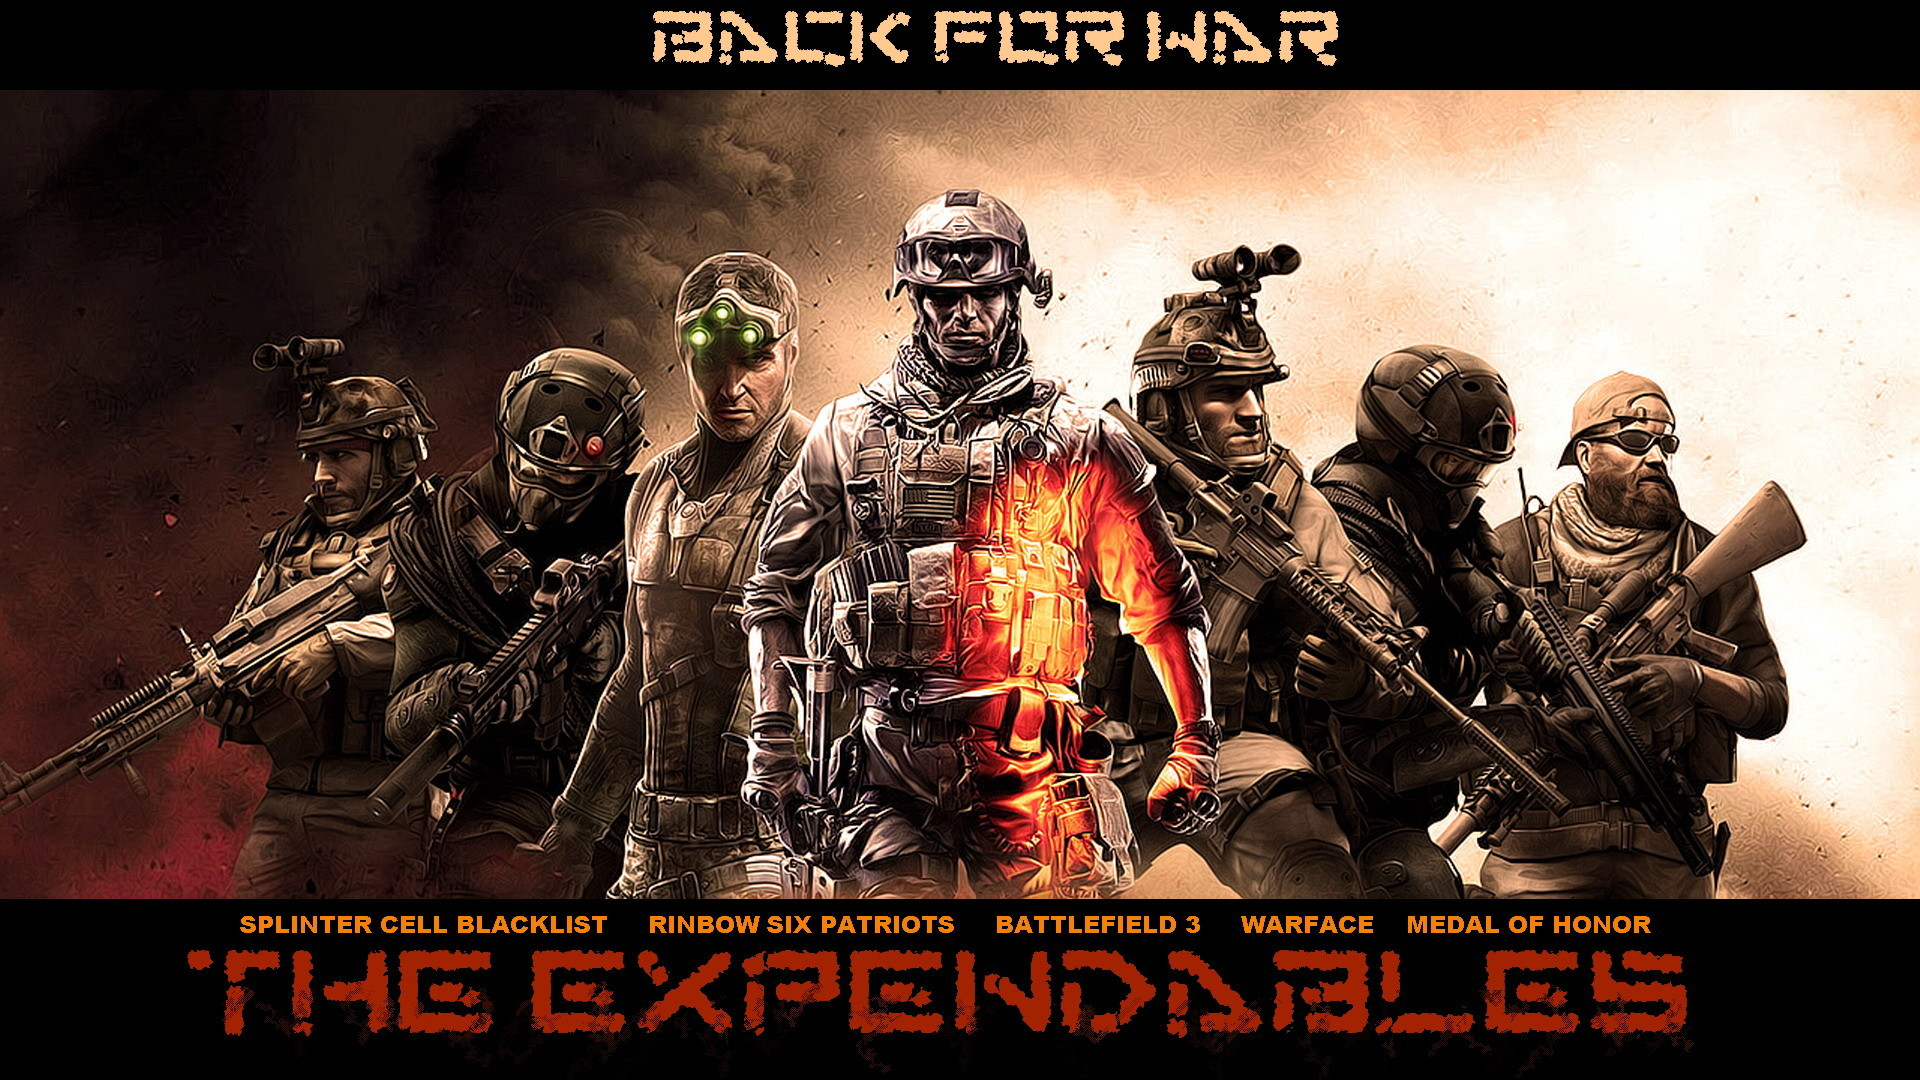 Download 'awesome hd expendables video game' HD wallpaper